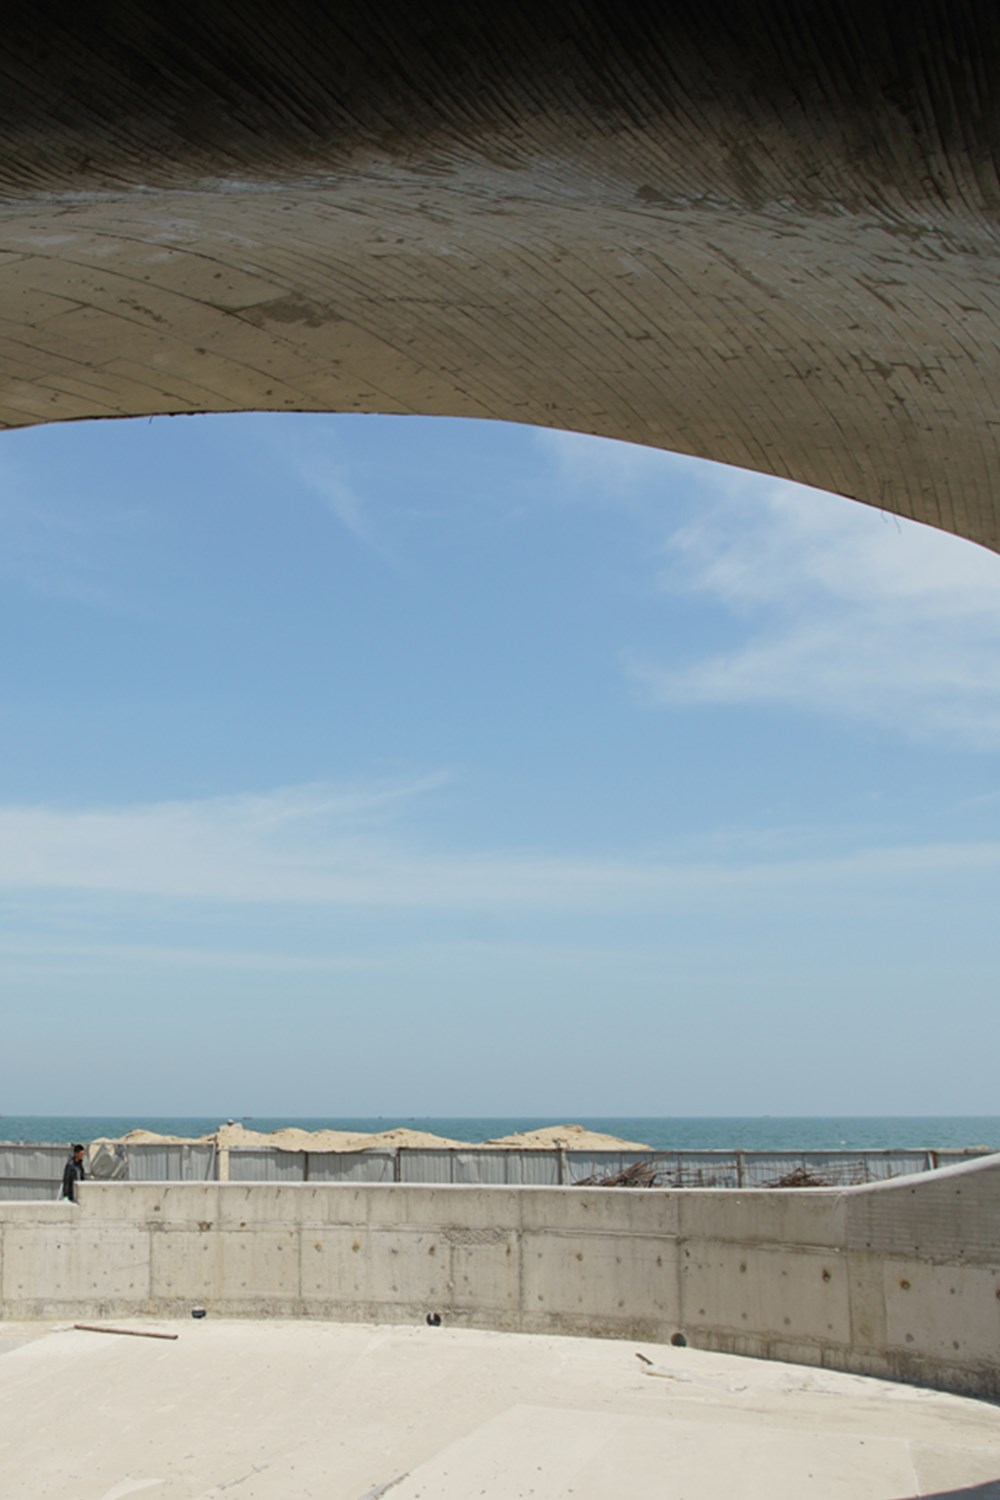 UCCA Announces the Formation of UCCA Dune, a New Museum by the Sea in Beidaihe